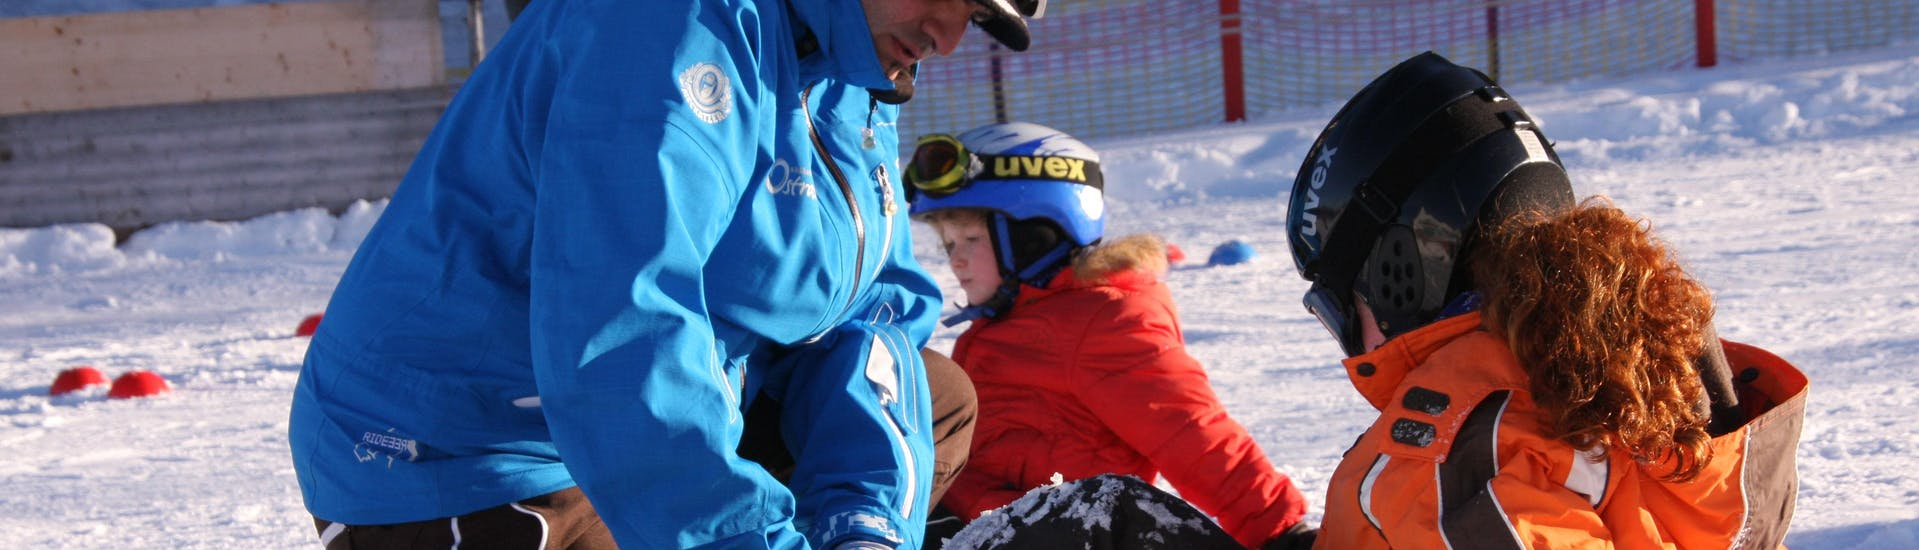 Private Snowboarding Lessons for Kids & Adults of All Levels with Ski & Snowboard School Ostrachtal - Hero image